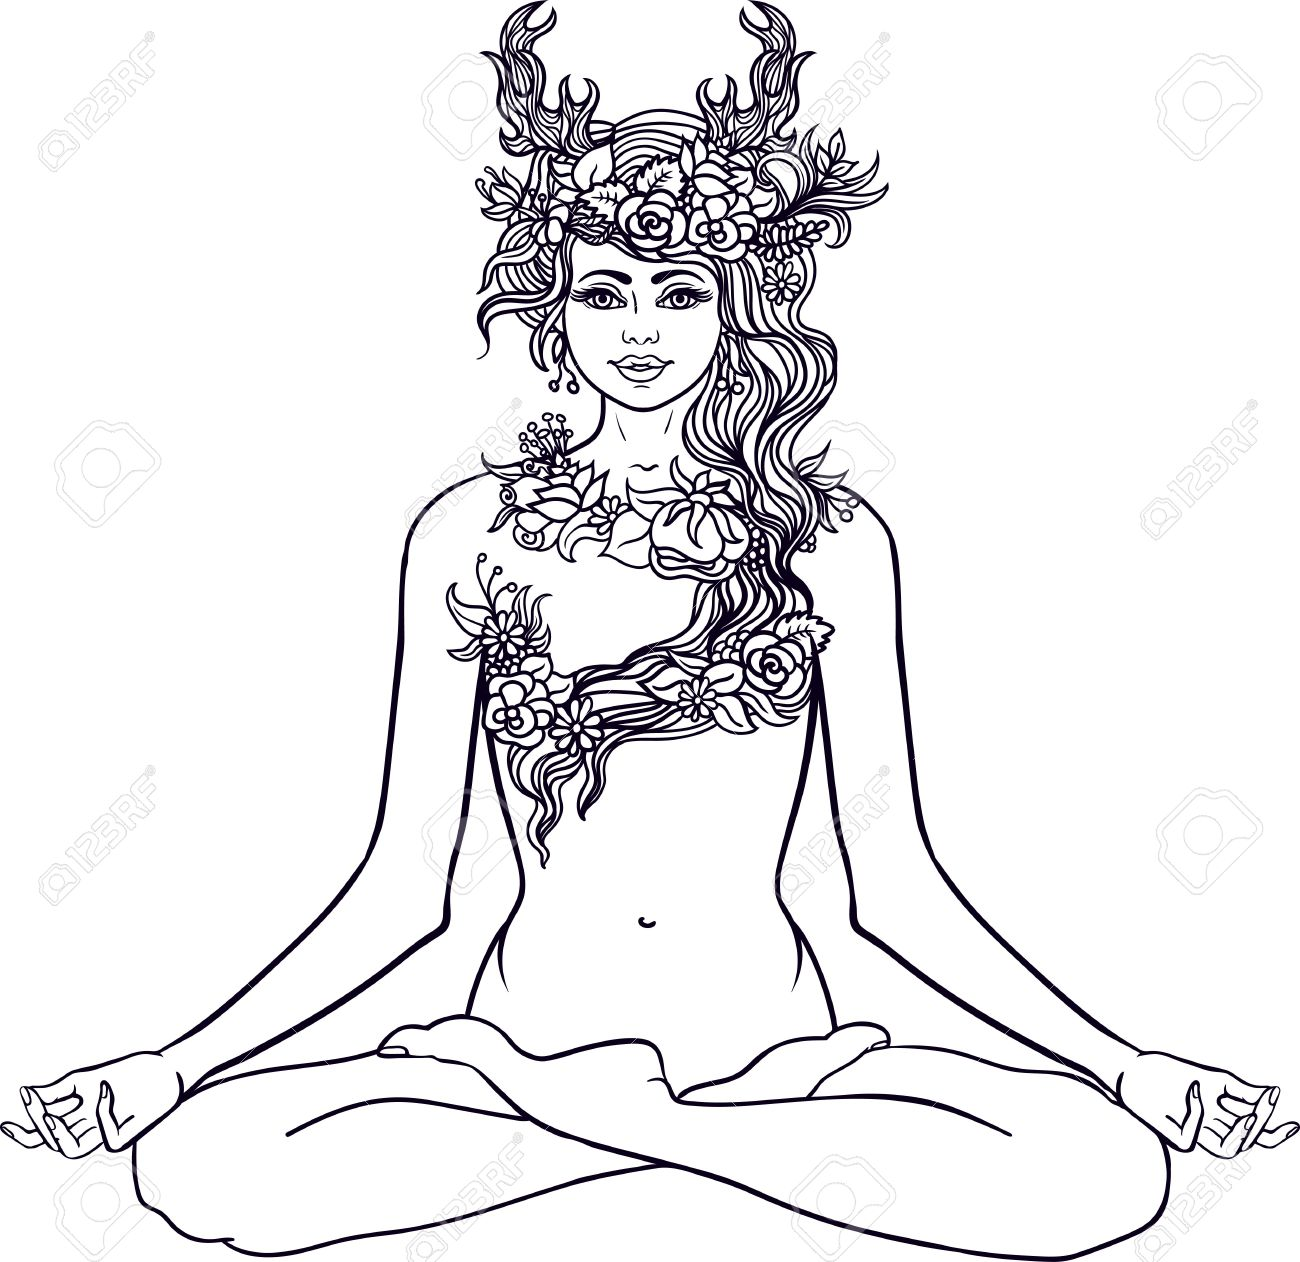 Goddess With Deer Horns Sitting In Yoga Lotus Meditation PoseForest Nymph Wreath Of